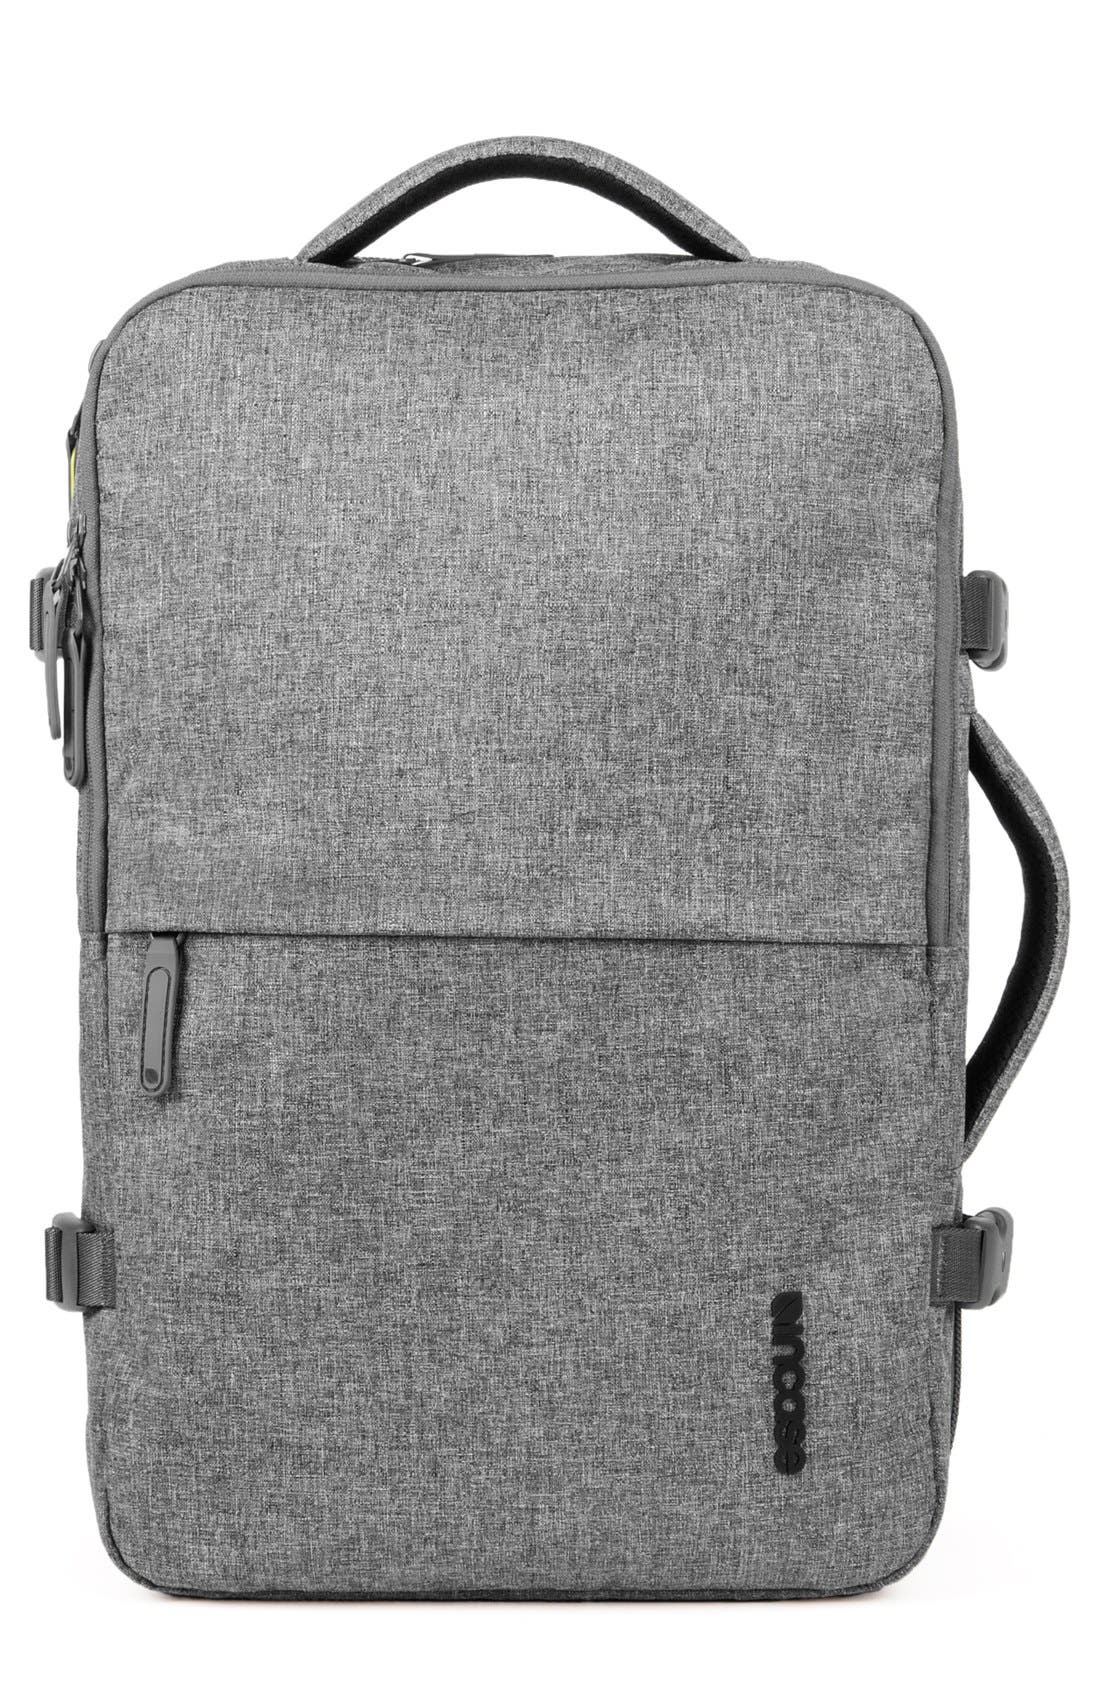 EO Travel Backpack,                         Main,                         color, HEATHER GREY